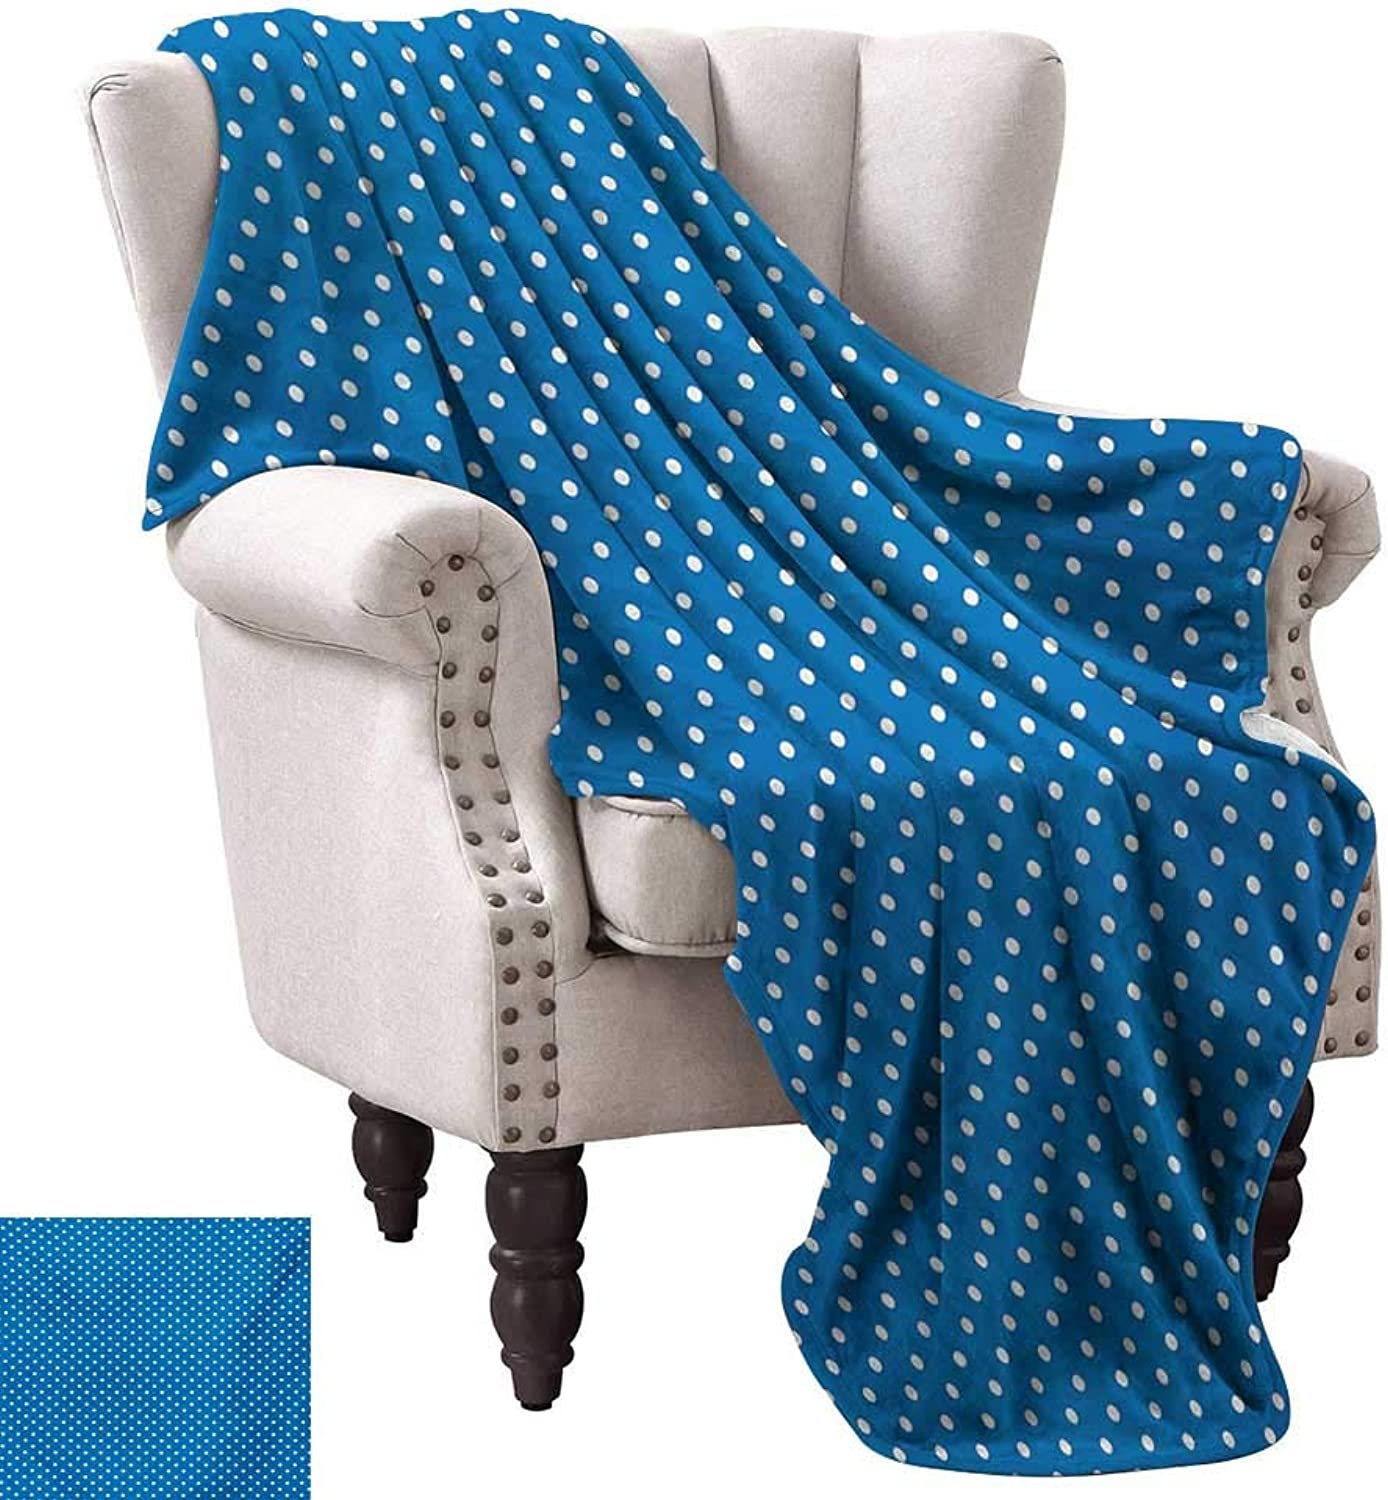 Anyangeight Digital Printing Blanket,Classical Polka Dots Pattern Modern Style Navy Boys Theme Retro Artistic Print 60 x50 ,Super Soft and Comfortable,Suitable for Sofas,Chairs,beds